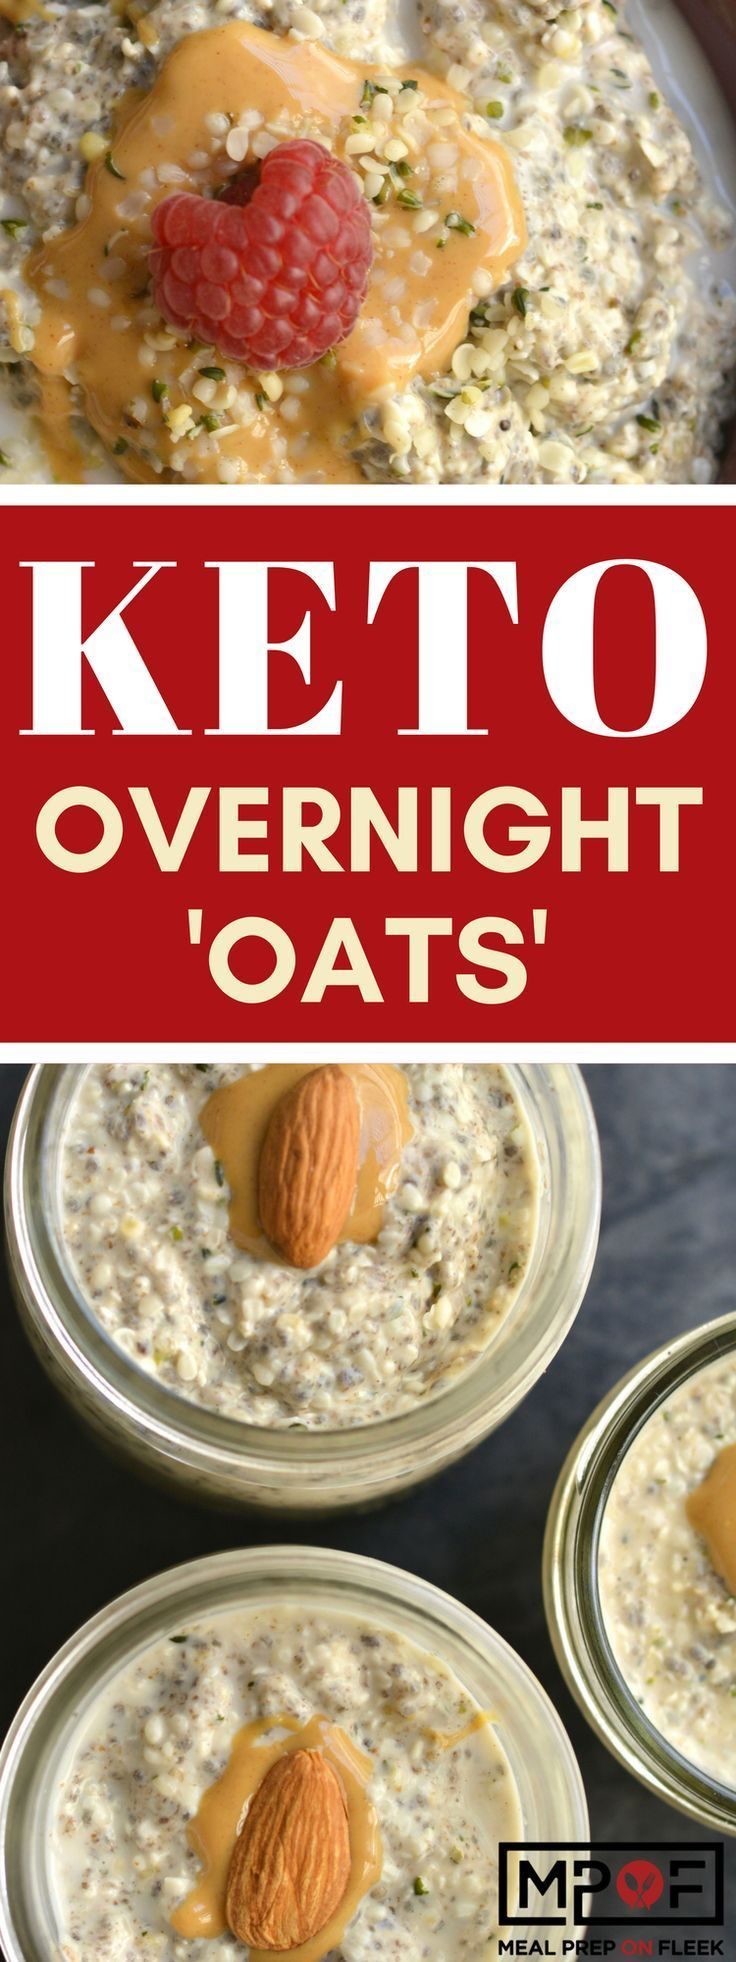 Keto Overnight 'Oats' - Made with hemp hearts is an easy make ahead keto breakfast! Packed with protein and omega-3, you can't go wrong with this breakfast!